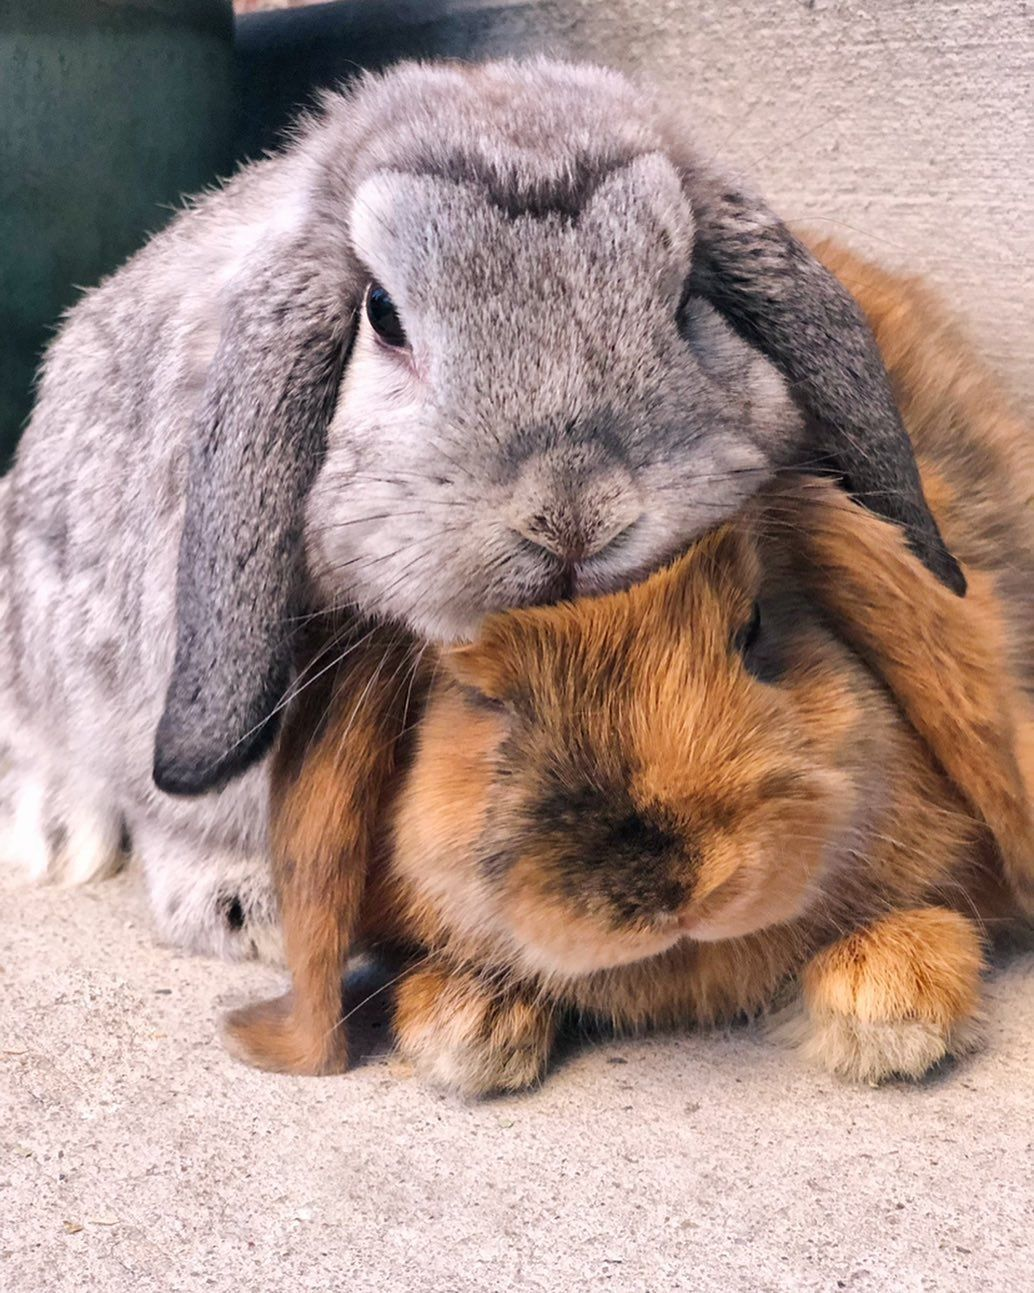 Pin By Shannon Flexhaug On Bunnies In 2020 Baby Animals